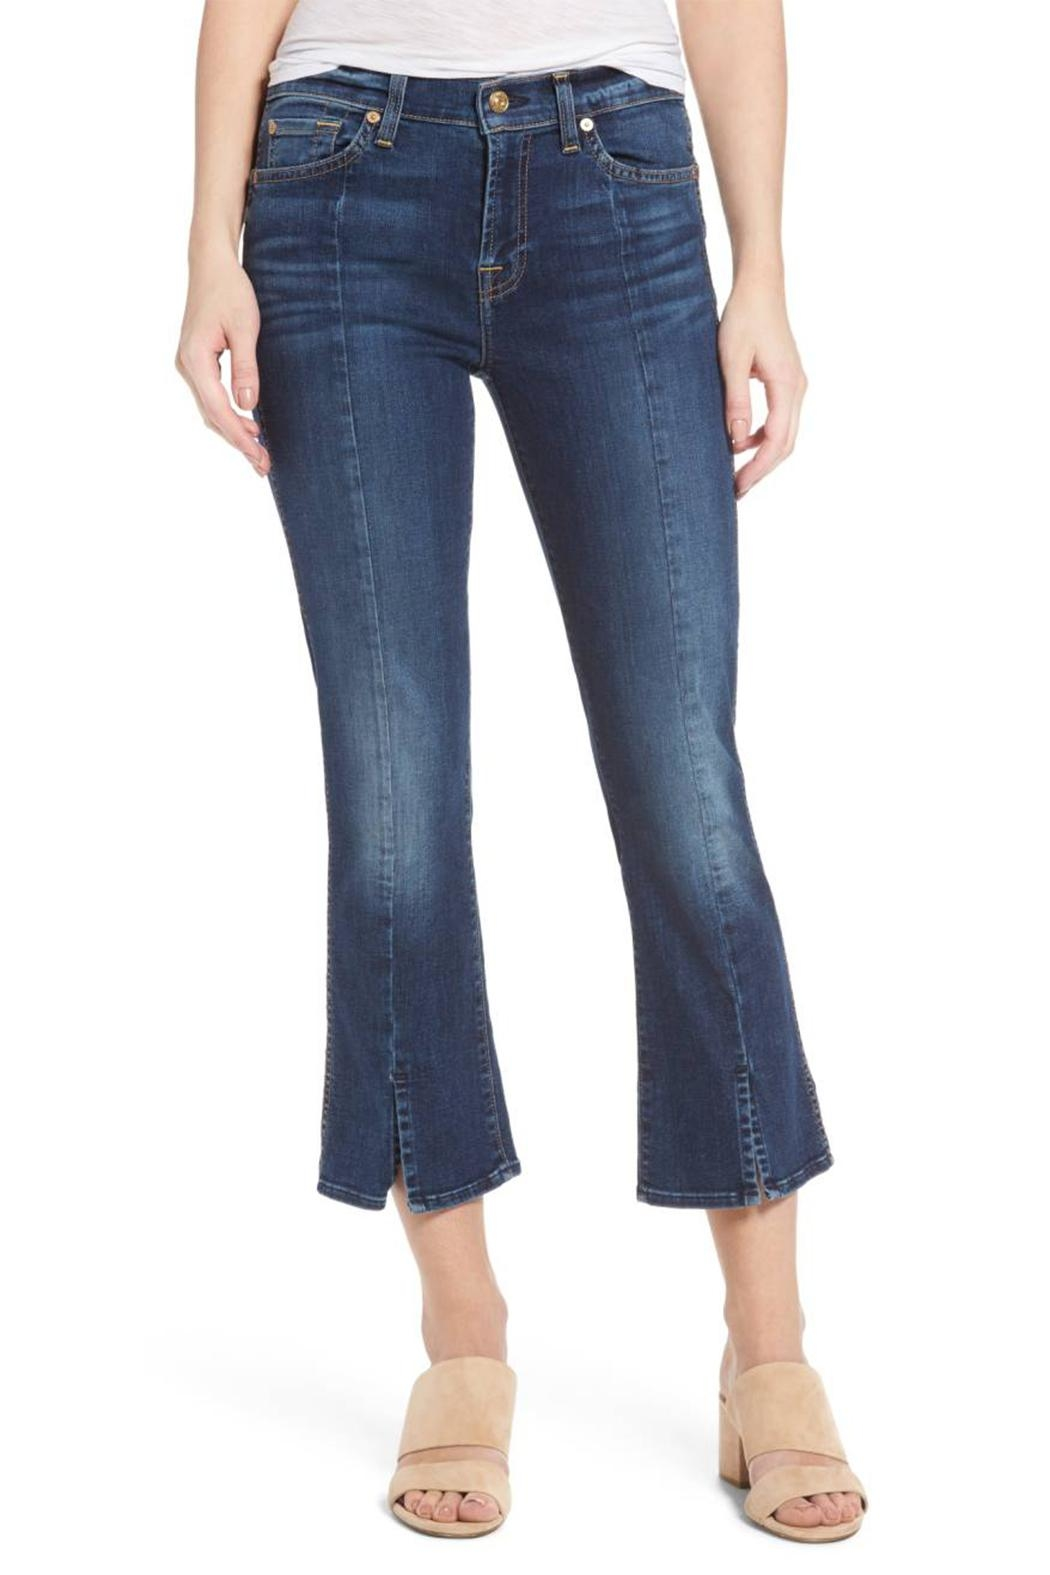 7 For all Mankind Cropped Boot Flare - Main Image